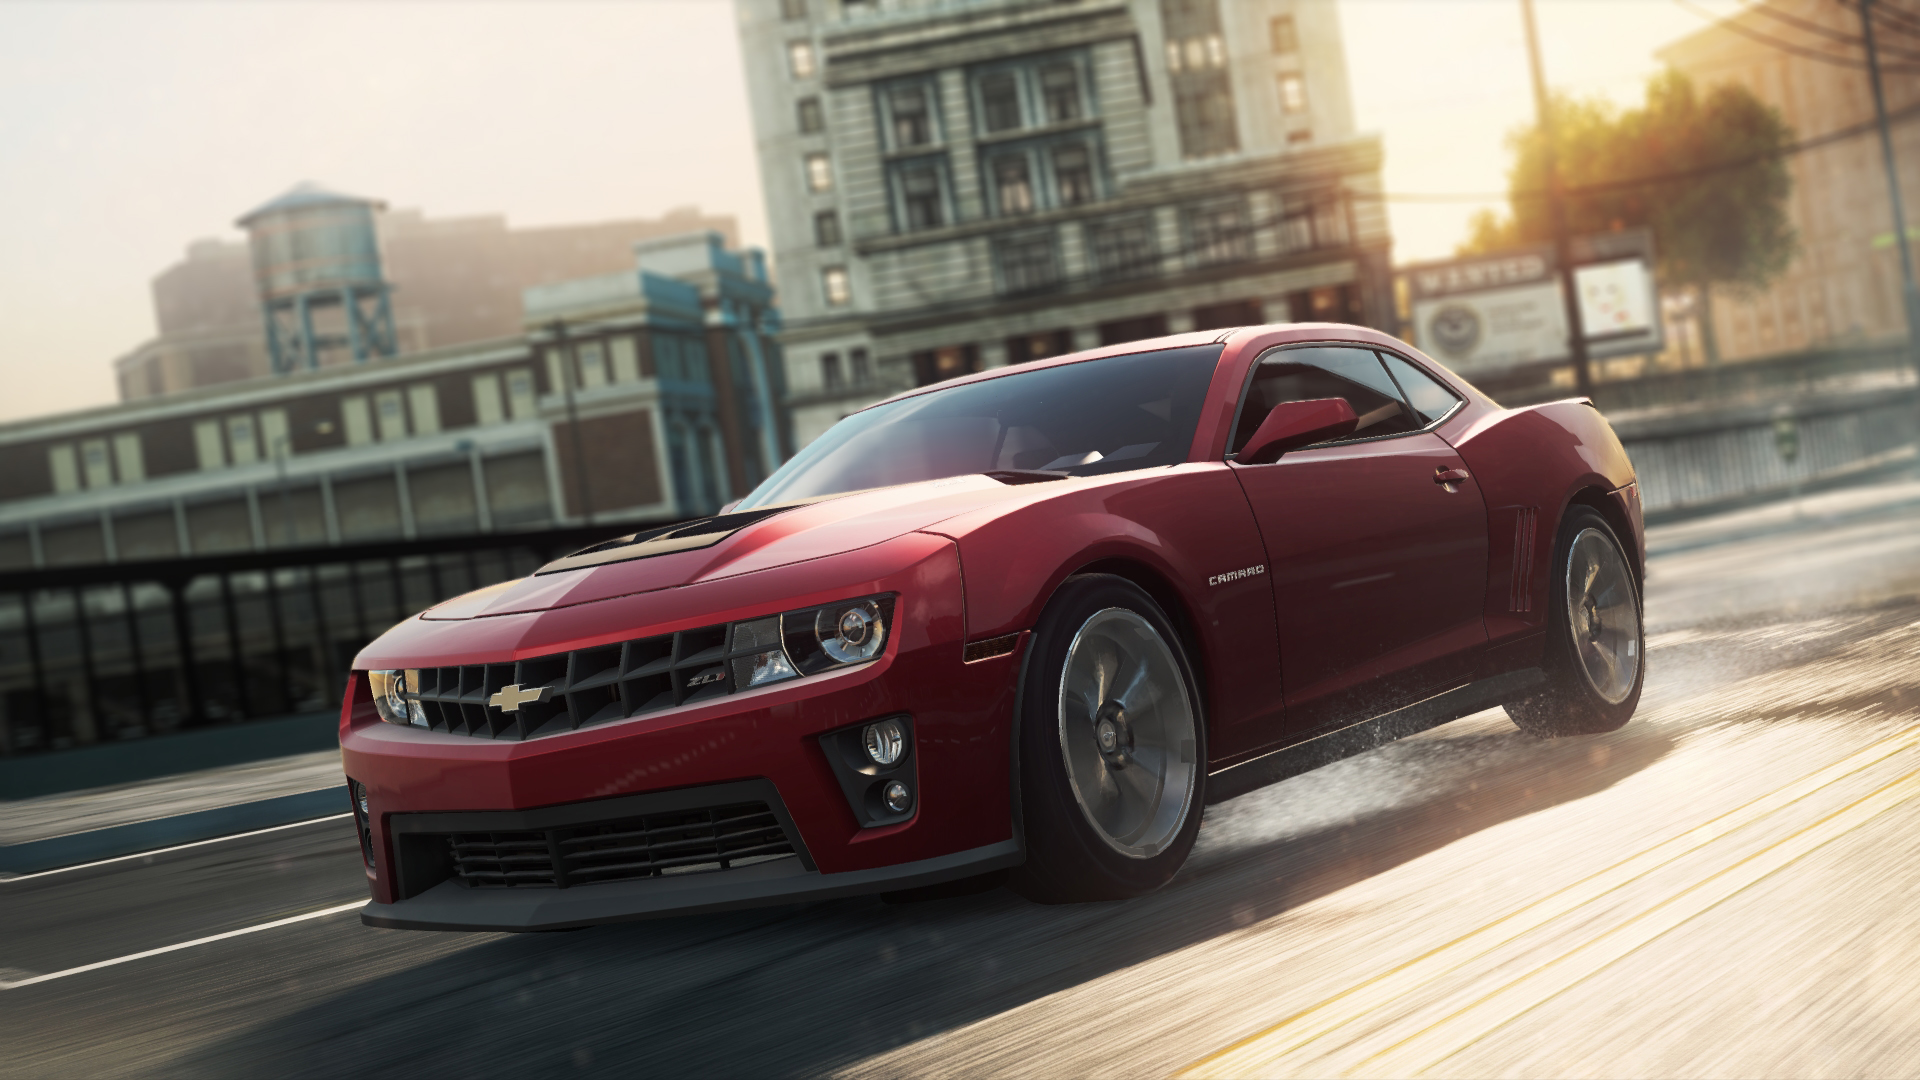 Chevrolet Camaro Zl1 2012 Need For Speed Wiki Fandom